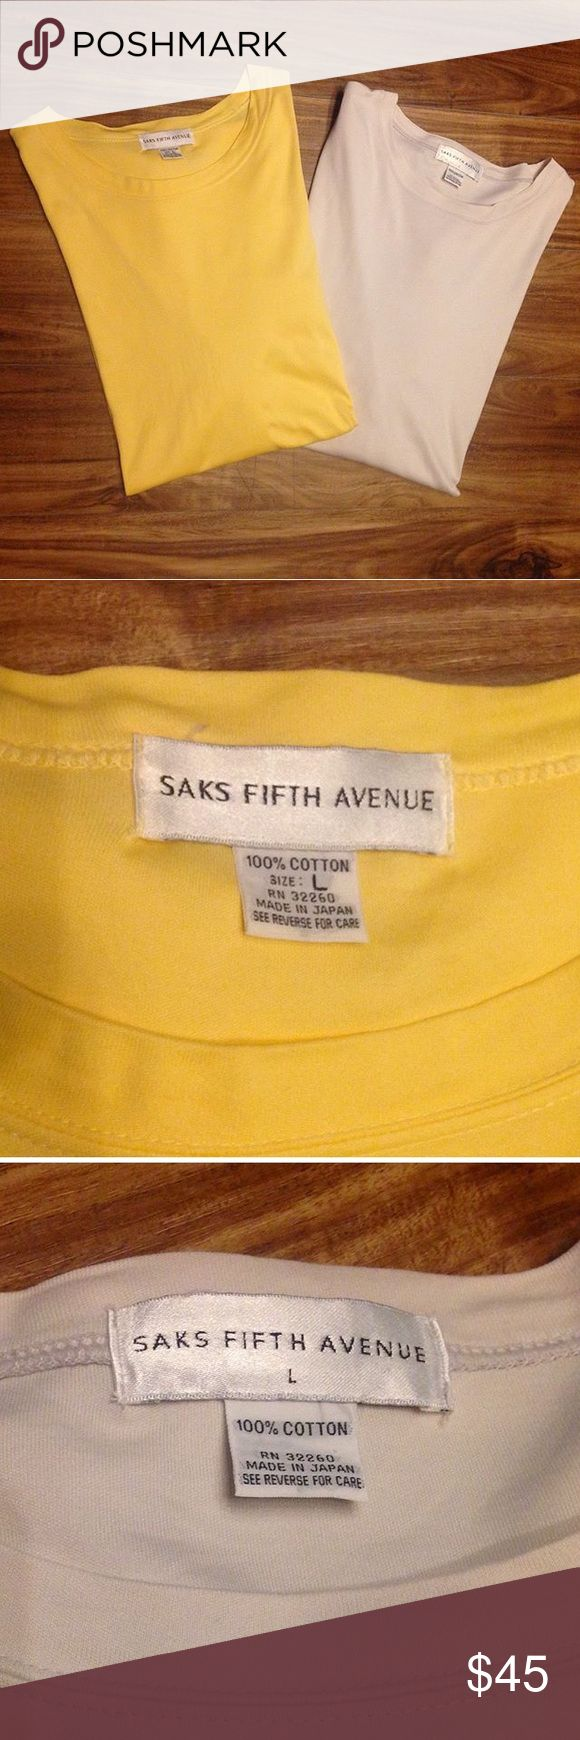 2 Saks Fifth Avenue T-Shirts:Yellow & Off-White, L Includes both shirts. No stains/holes. Both size Large. Silky feel Saks Fifth Avenue Shirts Tees - Short Sleeve